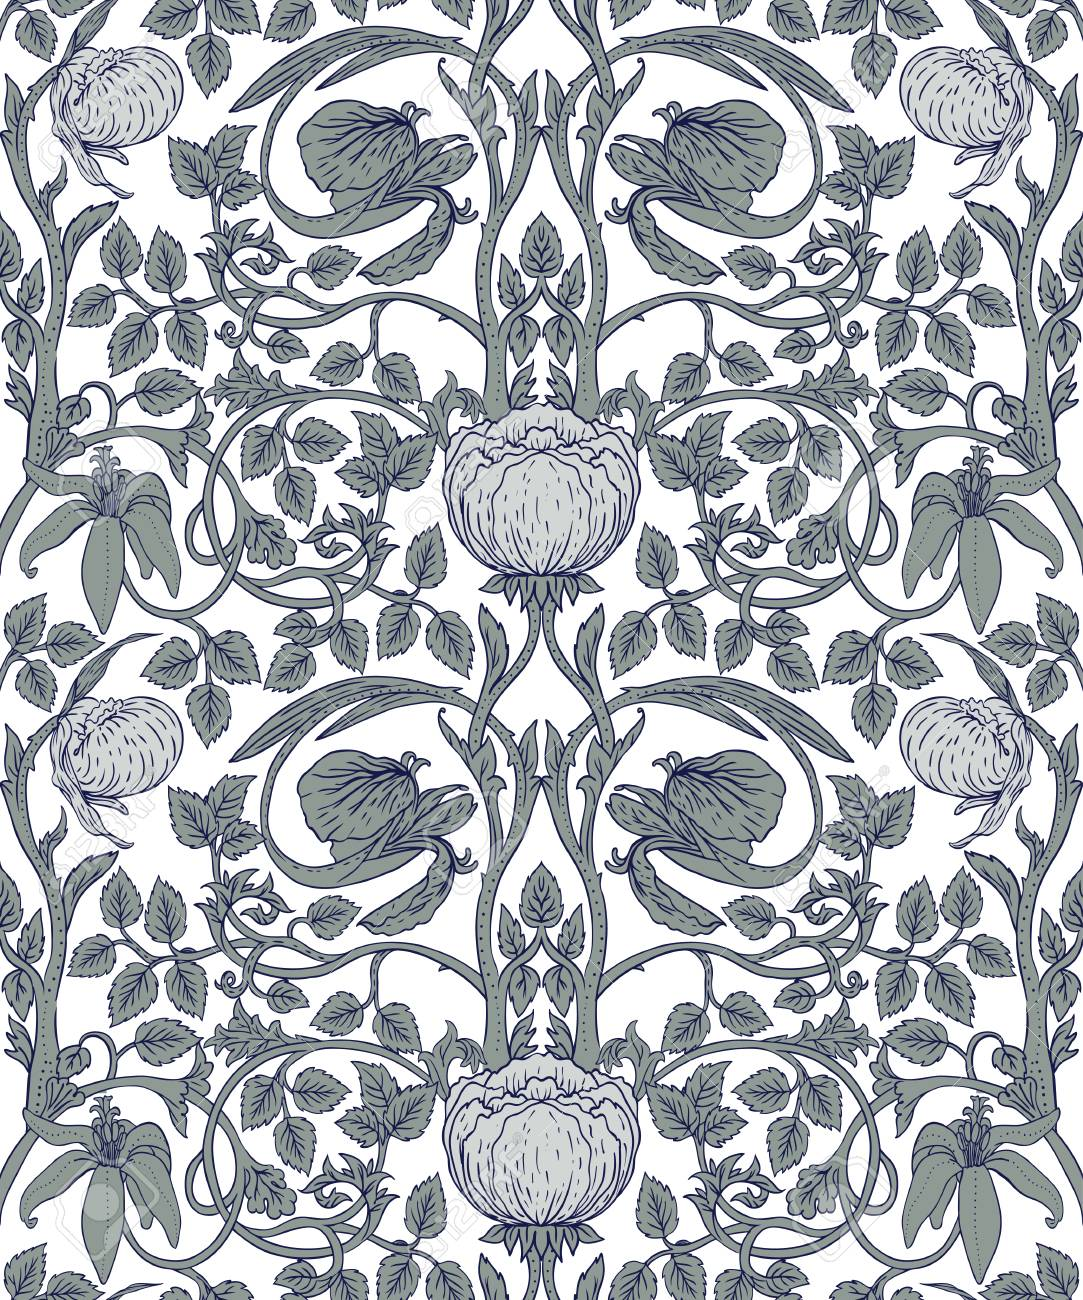 Floral Vintage Seamless Pattern For Retro Wallpapers Textiles Royalty Free Cliparts Vectors And Stock Illustration Image 99692735